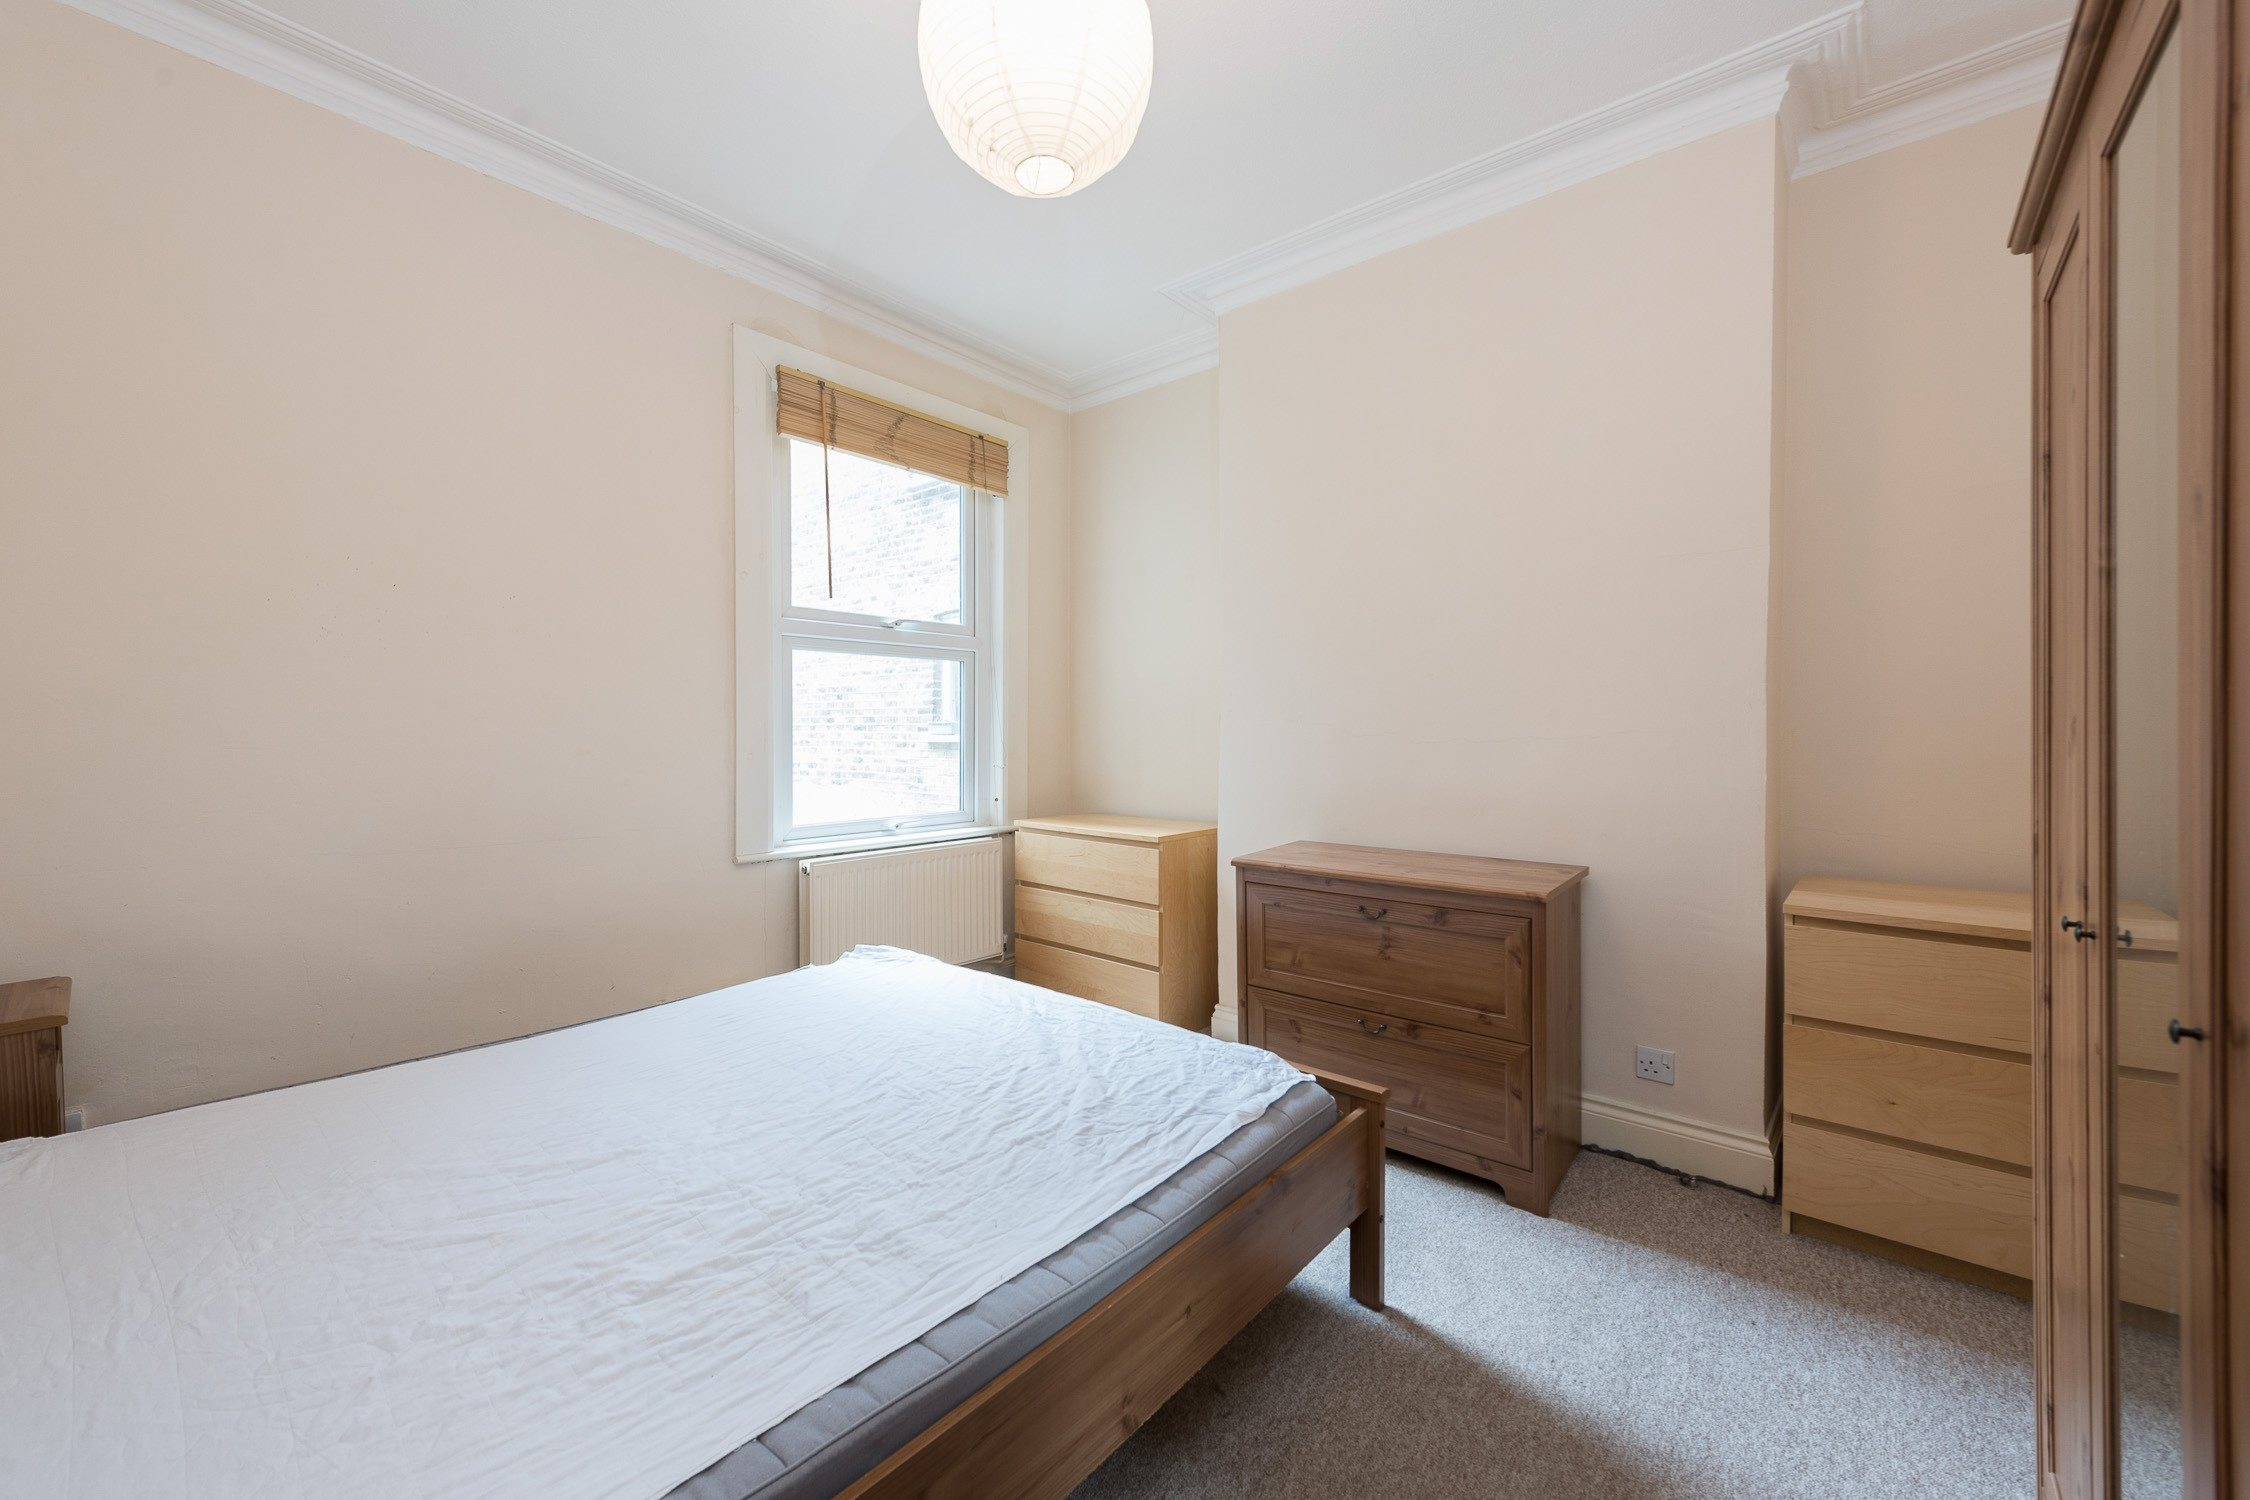 Portico 2 Bedroom Flat Recently Let In Peckham Rye